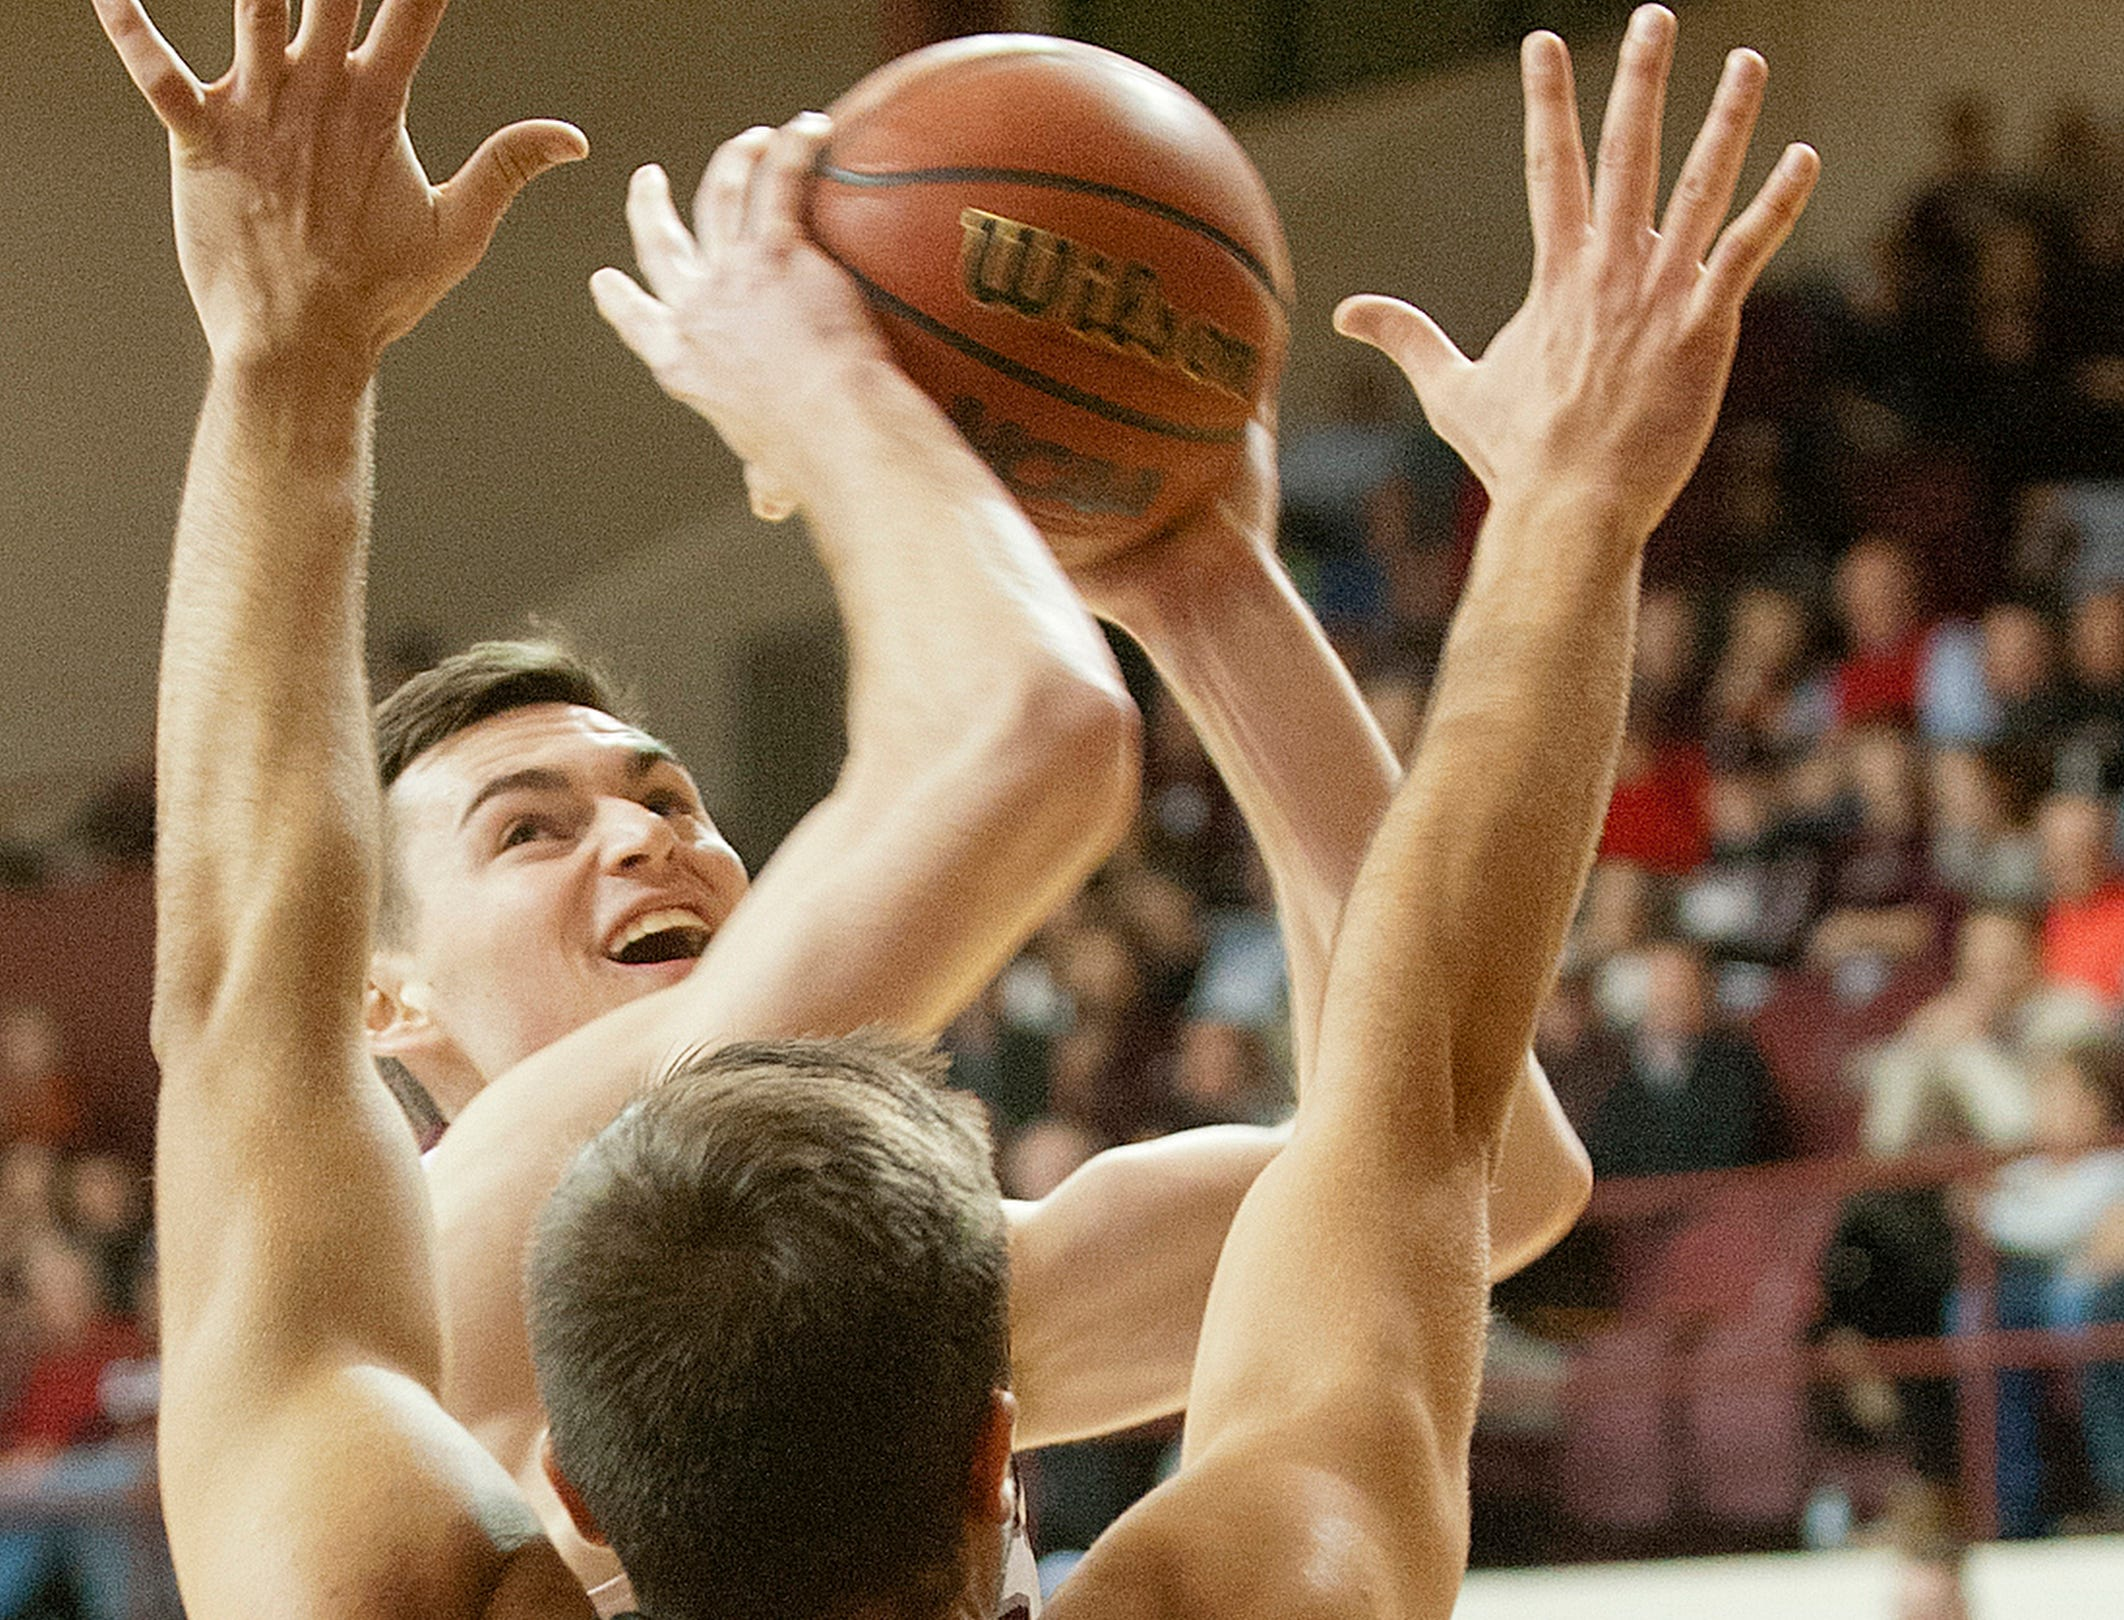 Bellarmine guard-forward Alex Cook  drives to the basket and passed the outstretched arms of Barry's forward Marko Tomic.18 December 2018